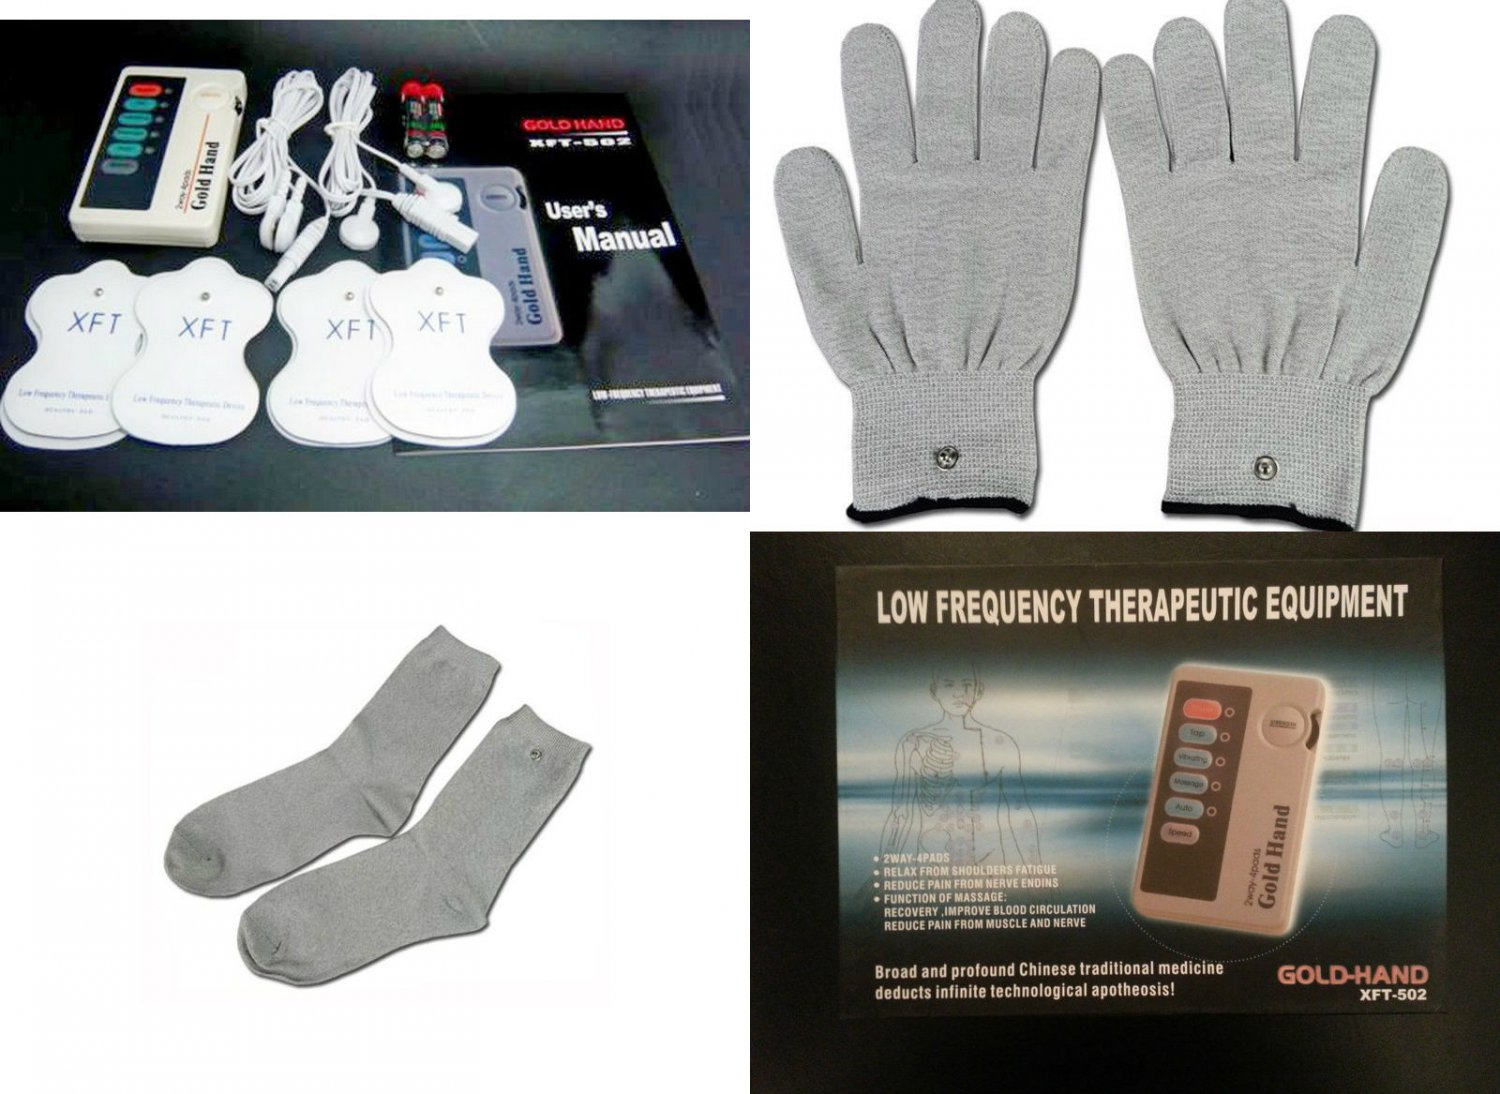 NIB GOLD HAND ELECTROTHERAPY TENS THERAPY MASSAGER W/CONDUCTIVE GLOVES+SOCKS